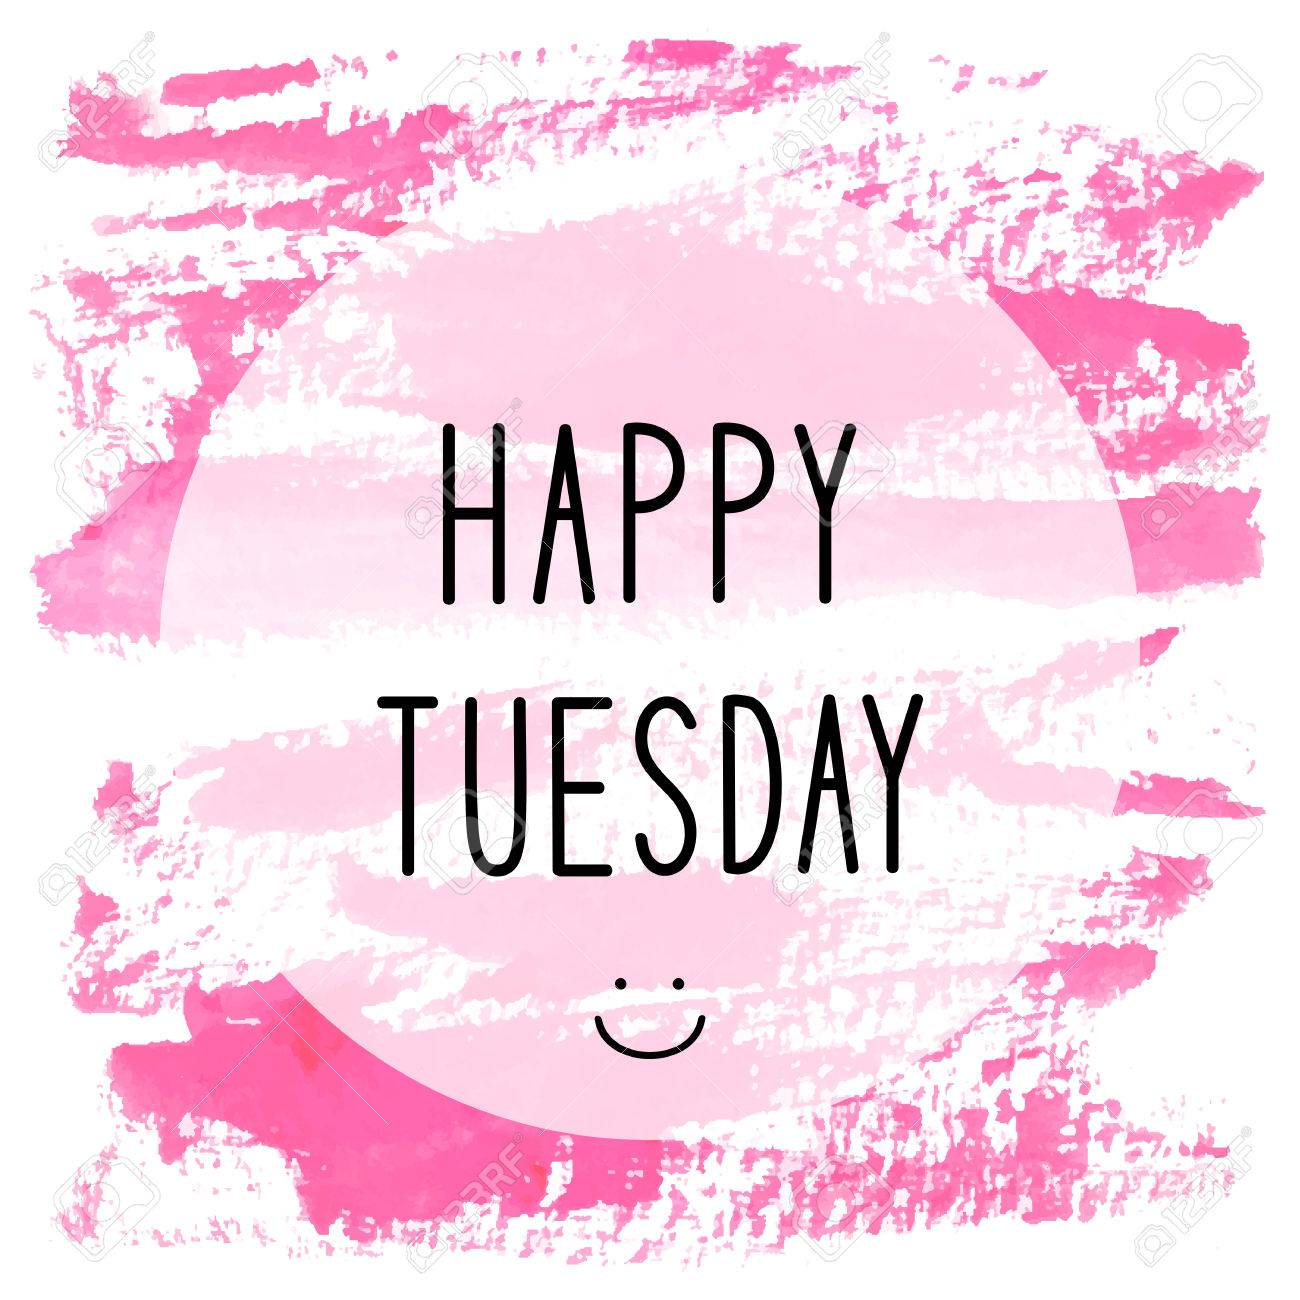 Happy Tuesday Text On Pink Watercolor Background. Stock Photo ...